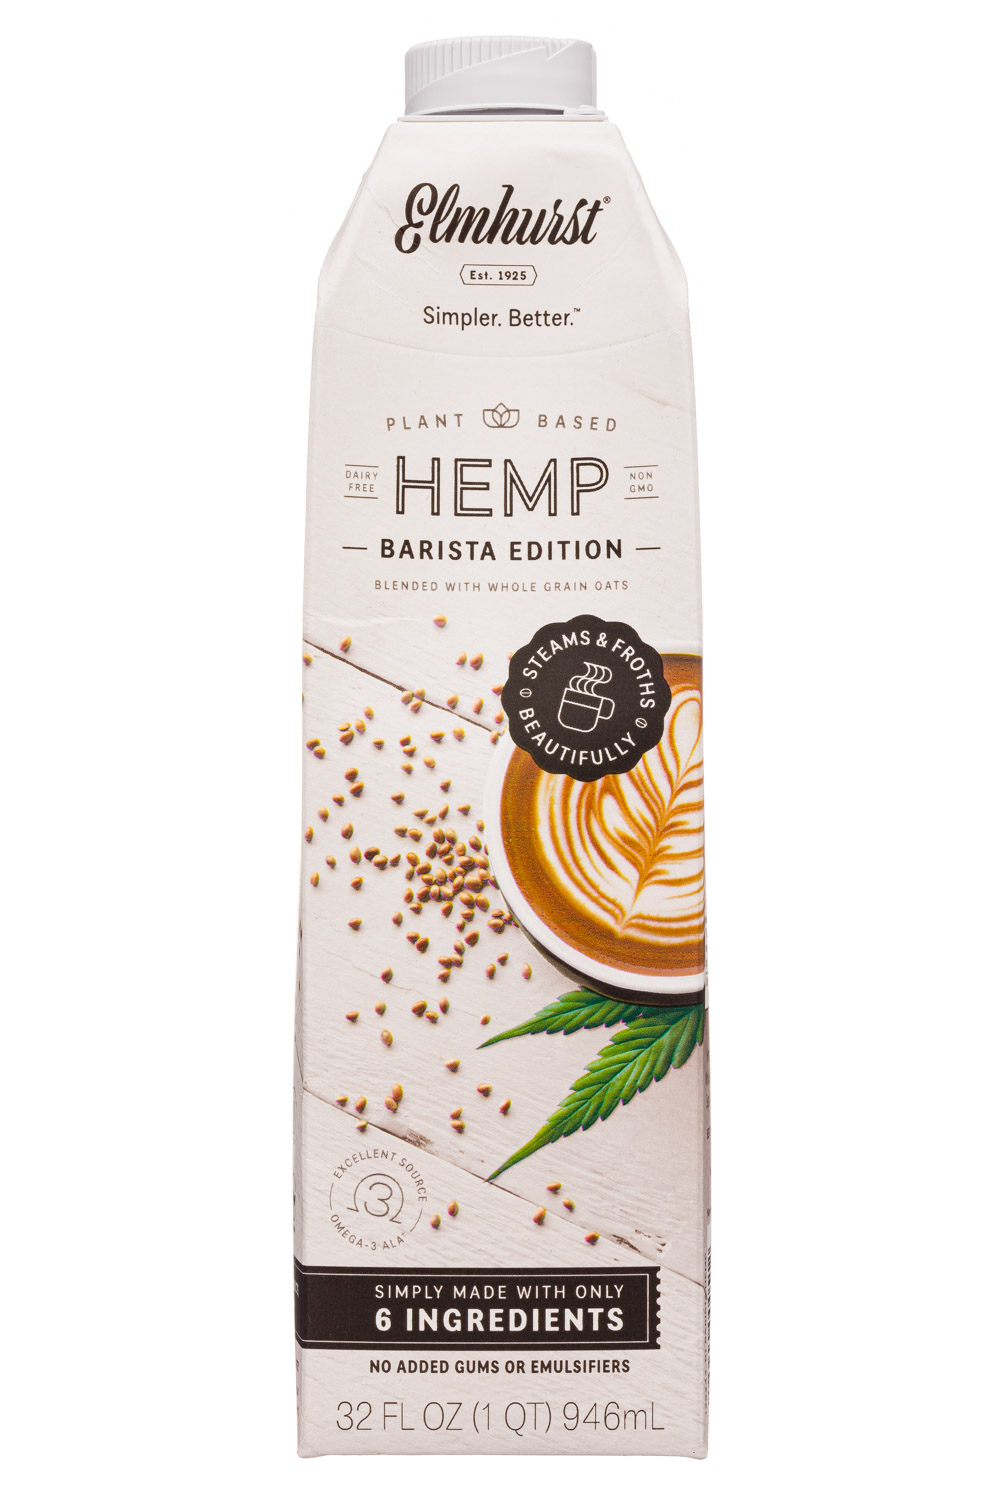 HEMP - Barista Edition